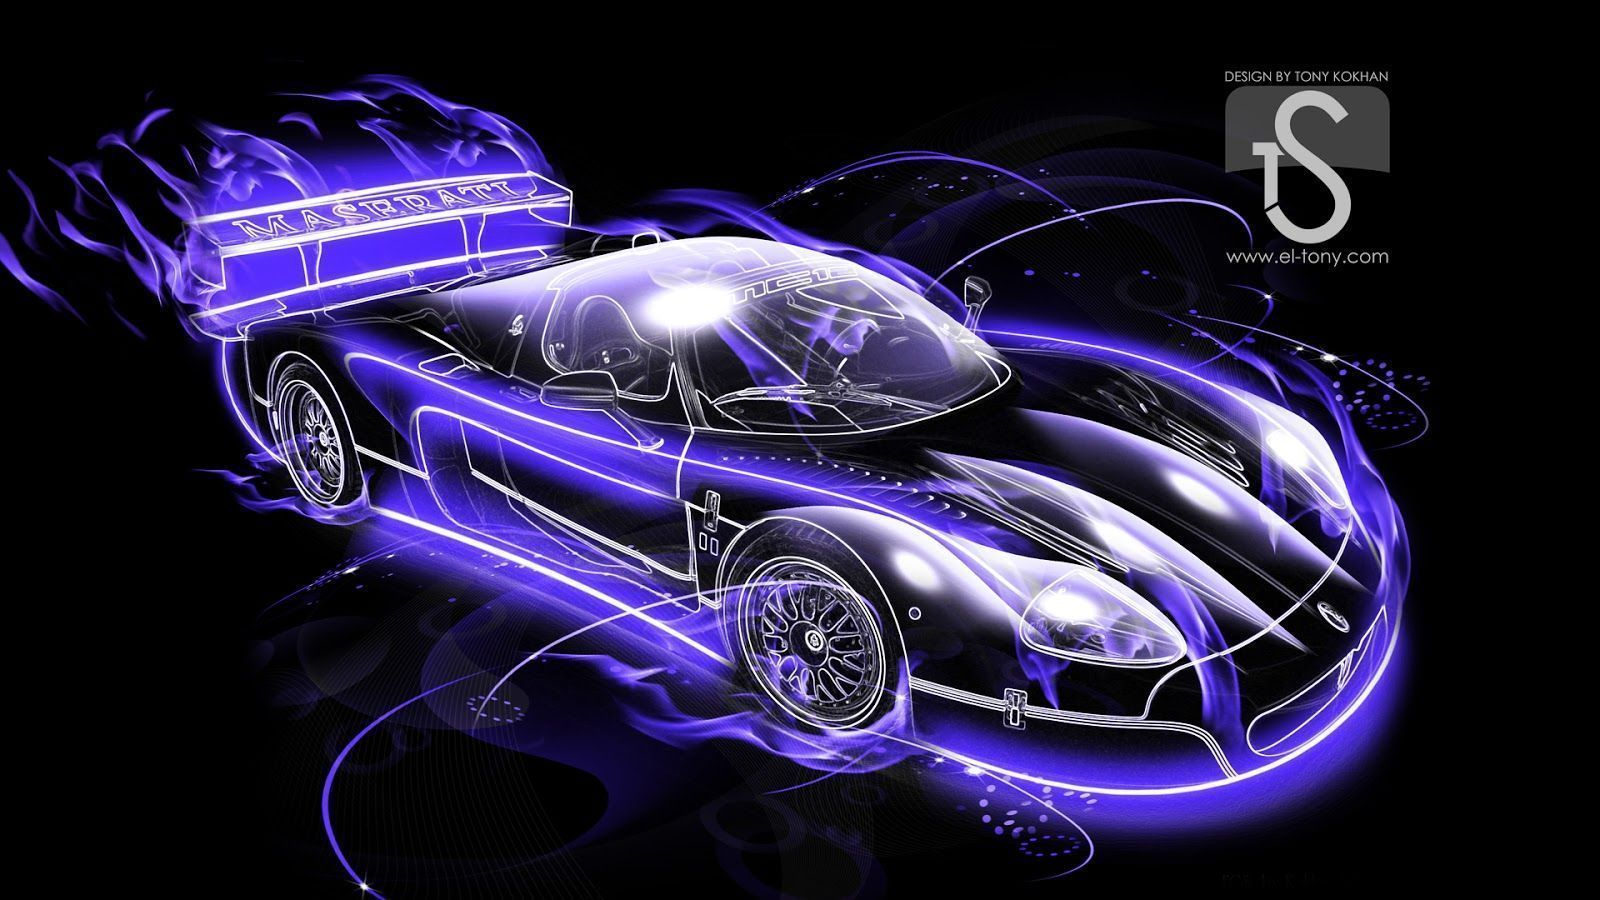 ✓ free for commercial use ✓ no attribution required ✓ high quality images. Cool 3d Car Wallpaper Cool 3d Cars 1600x900 Wallpaper Teahub Io